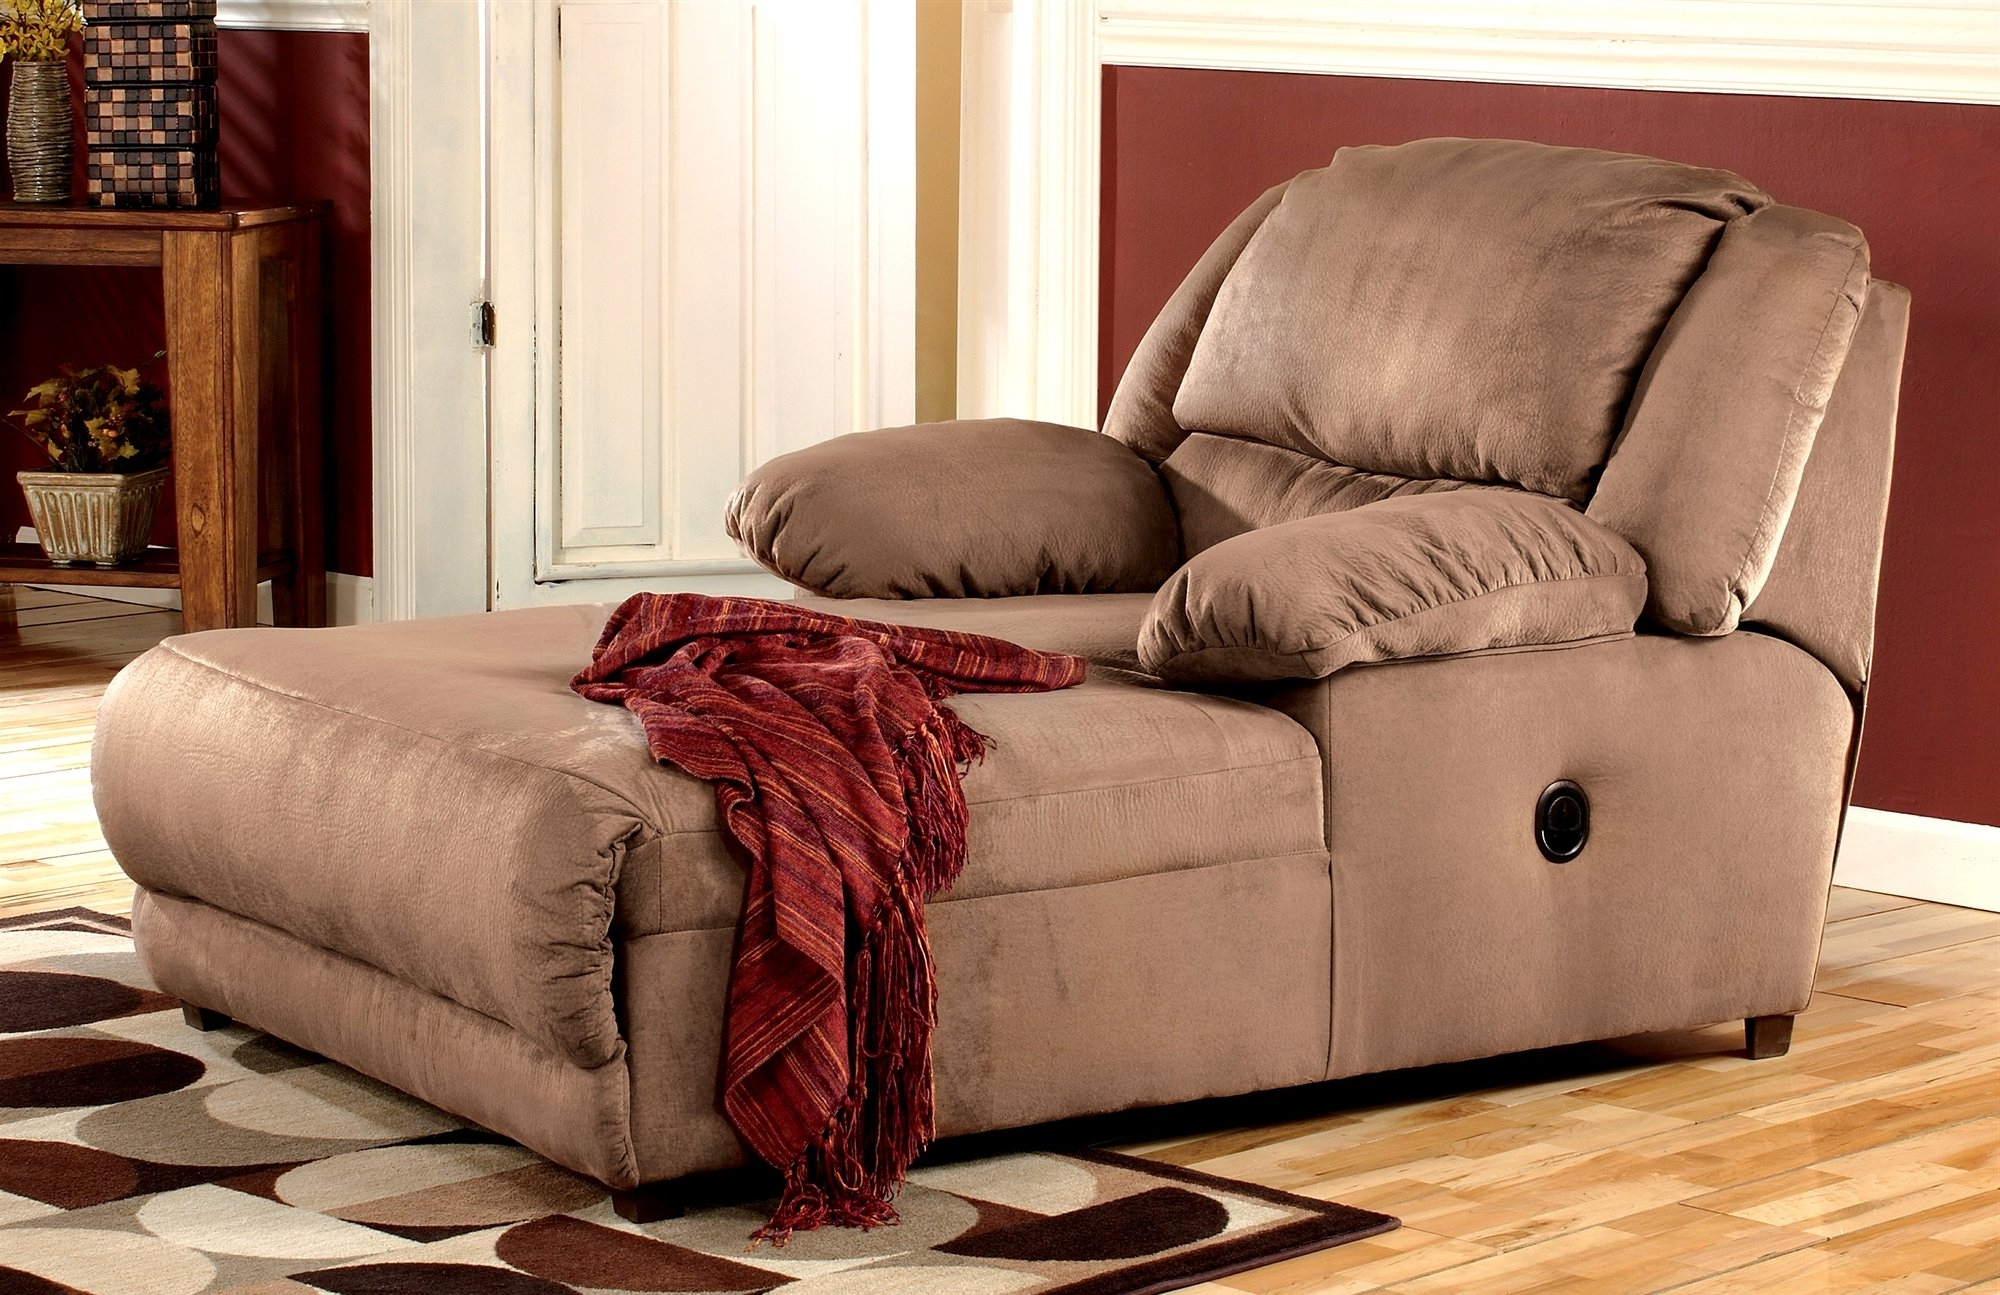 Cheap Indoor Chaise Lounges Throughout Most Recent Indoor Chaise Lounge Chair (View 5 of 15)